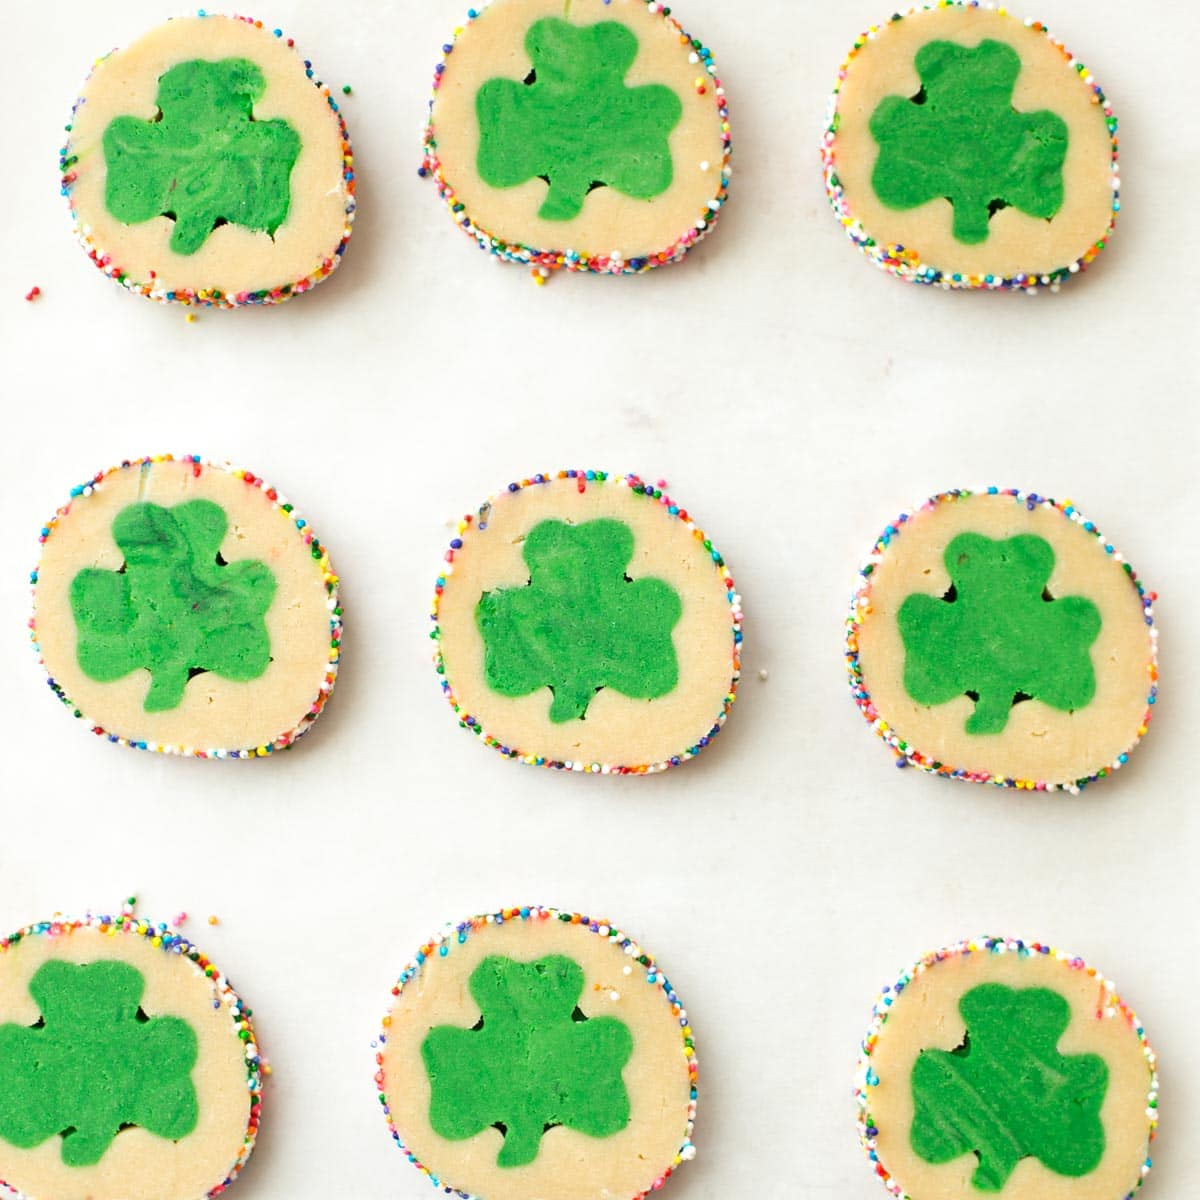 St Patricks day cookie dough slices on a baking sheet